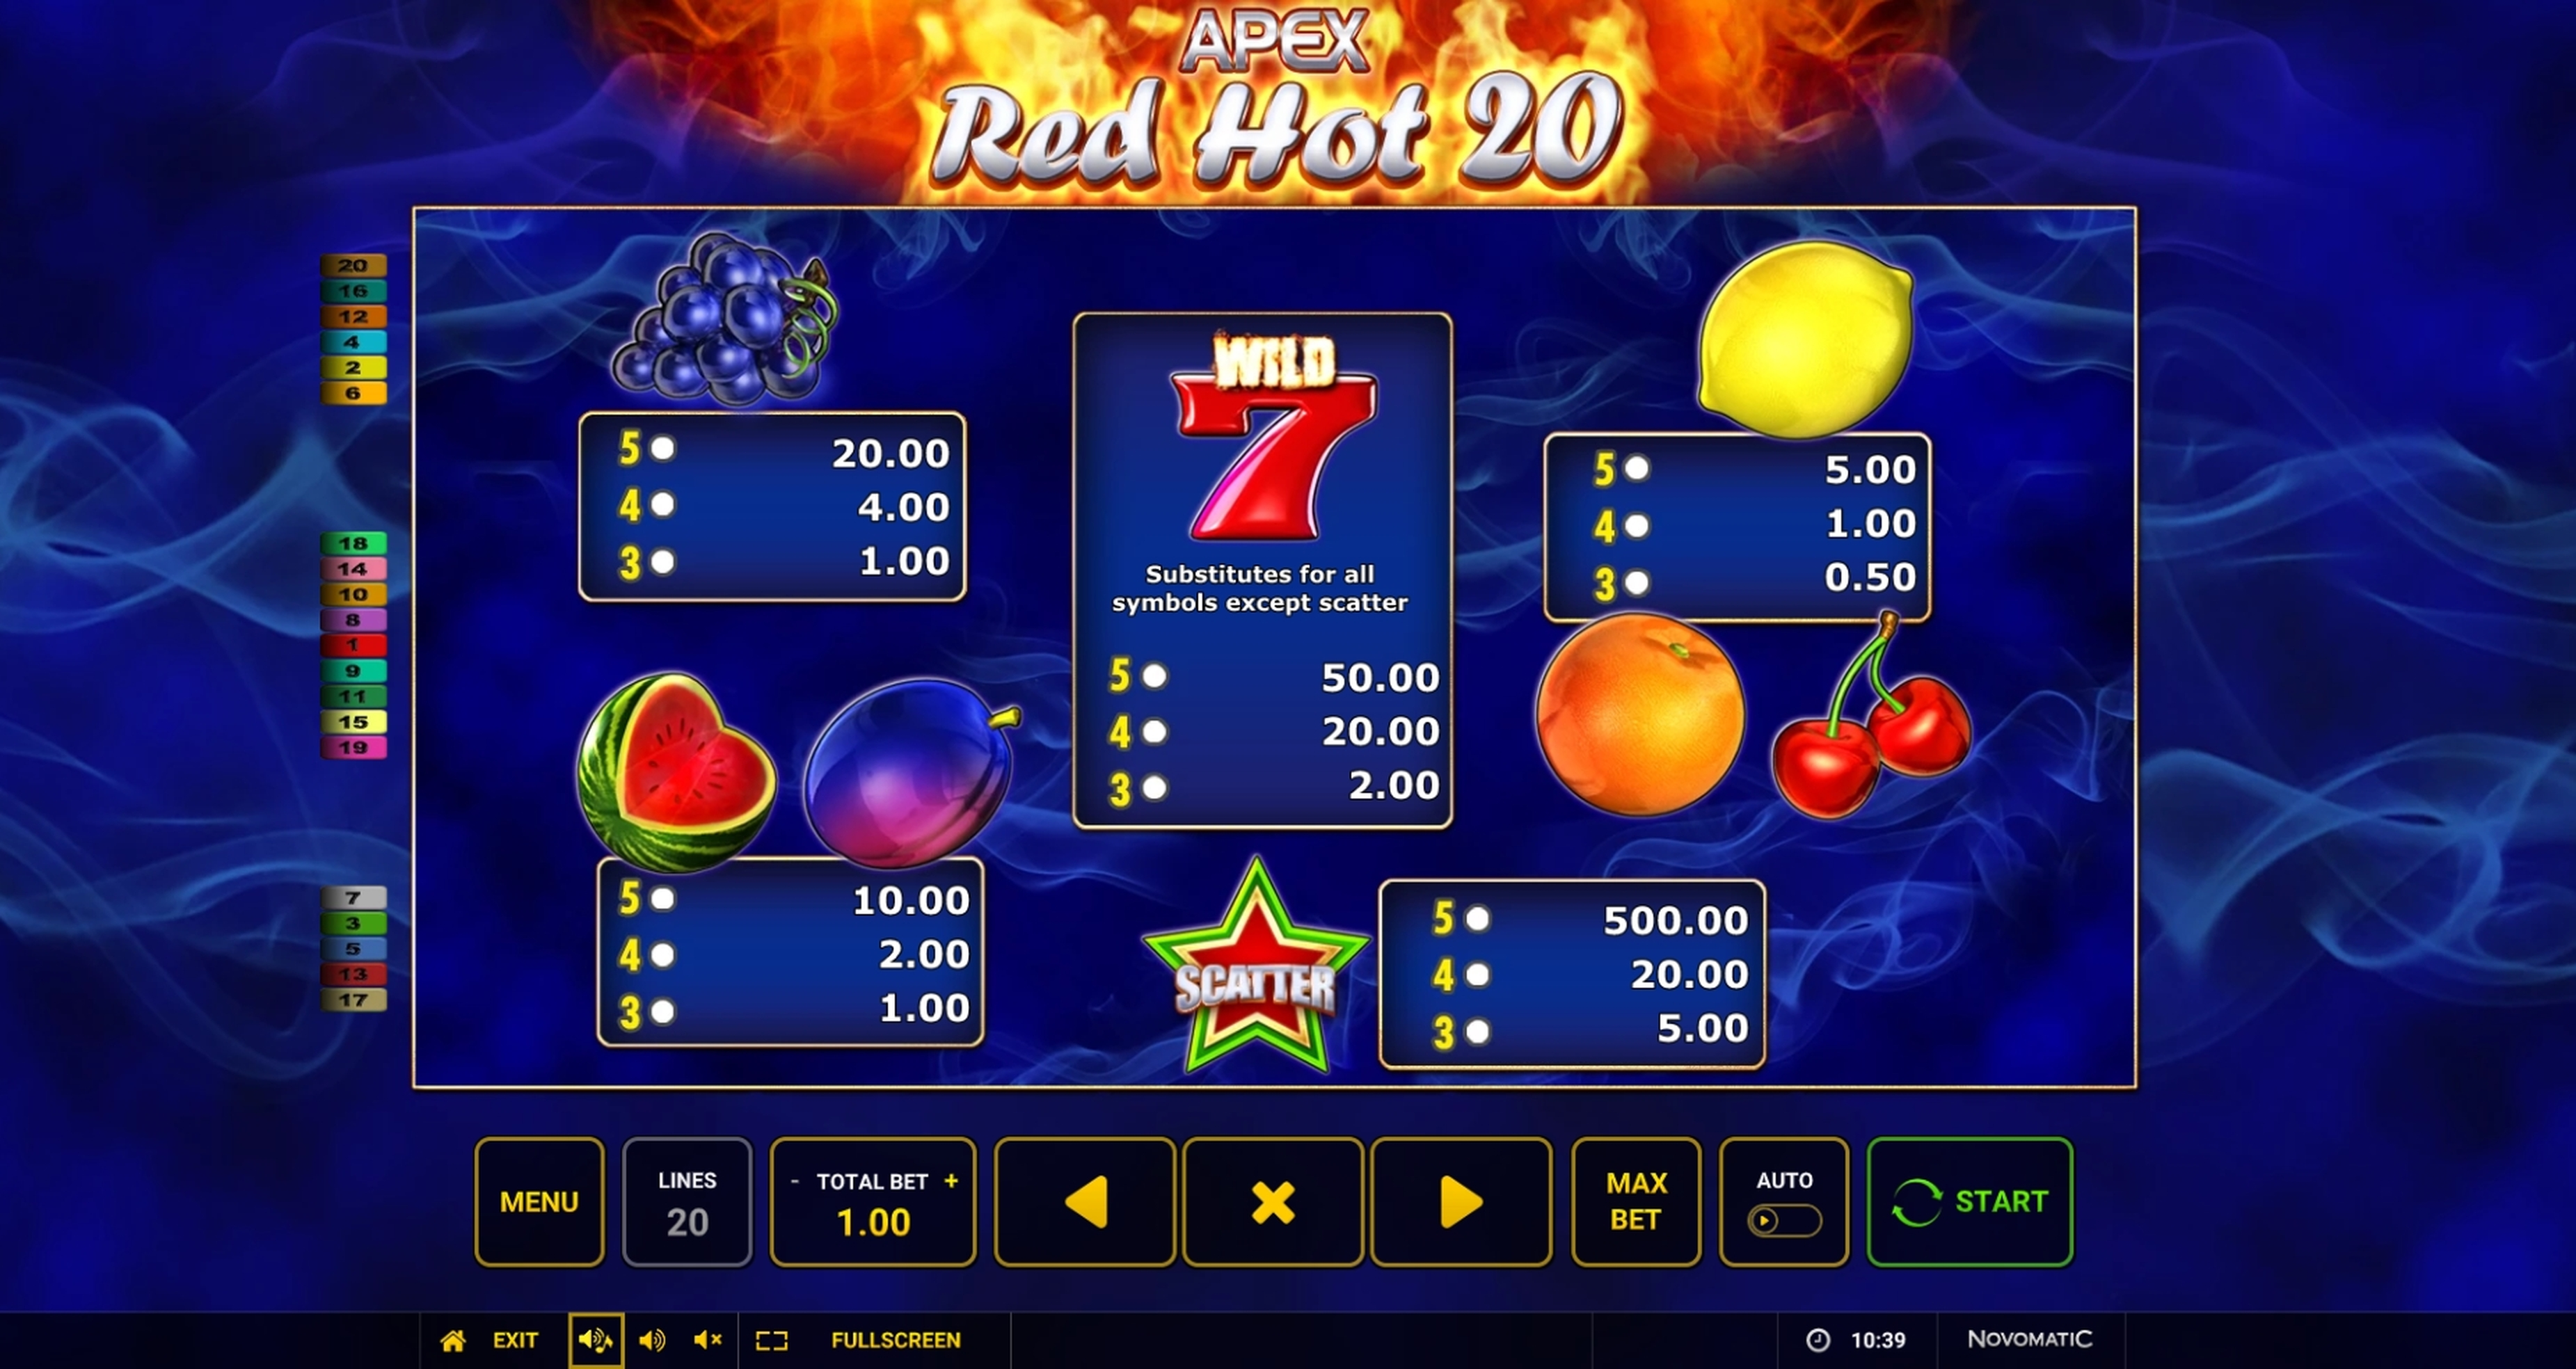 Info of Red Hot 20 Slot Game by Apex Gaming